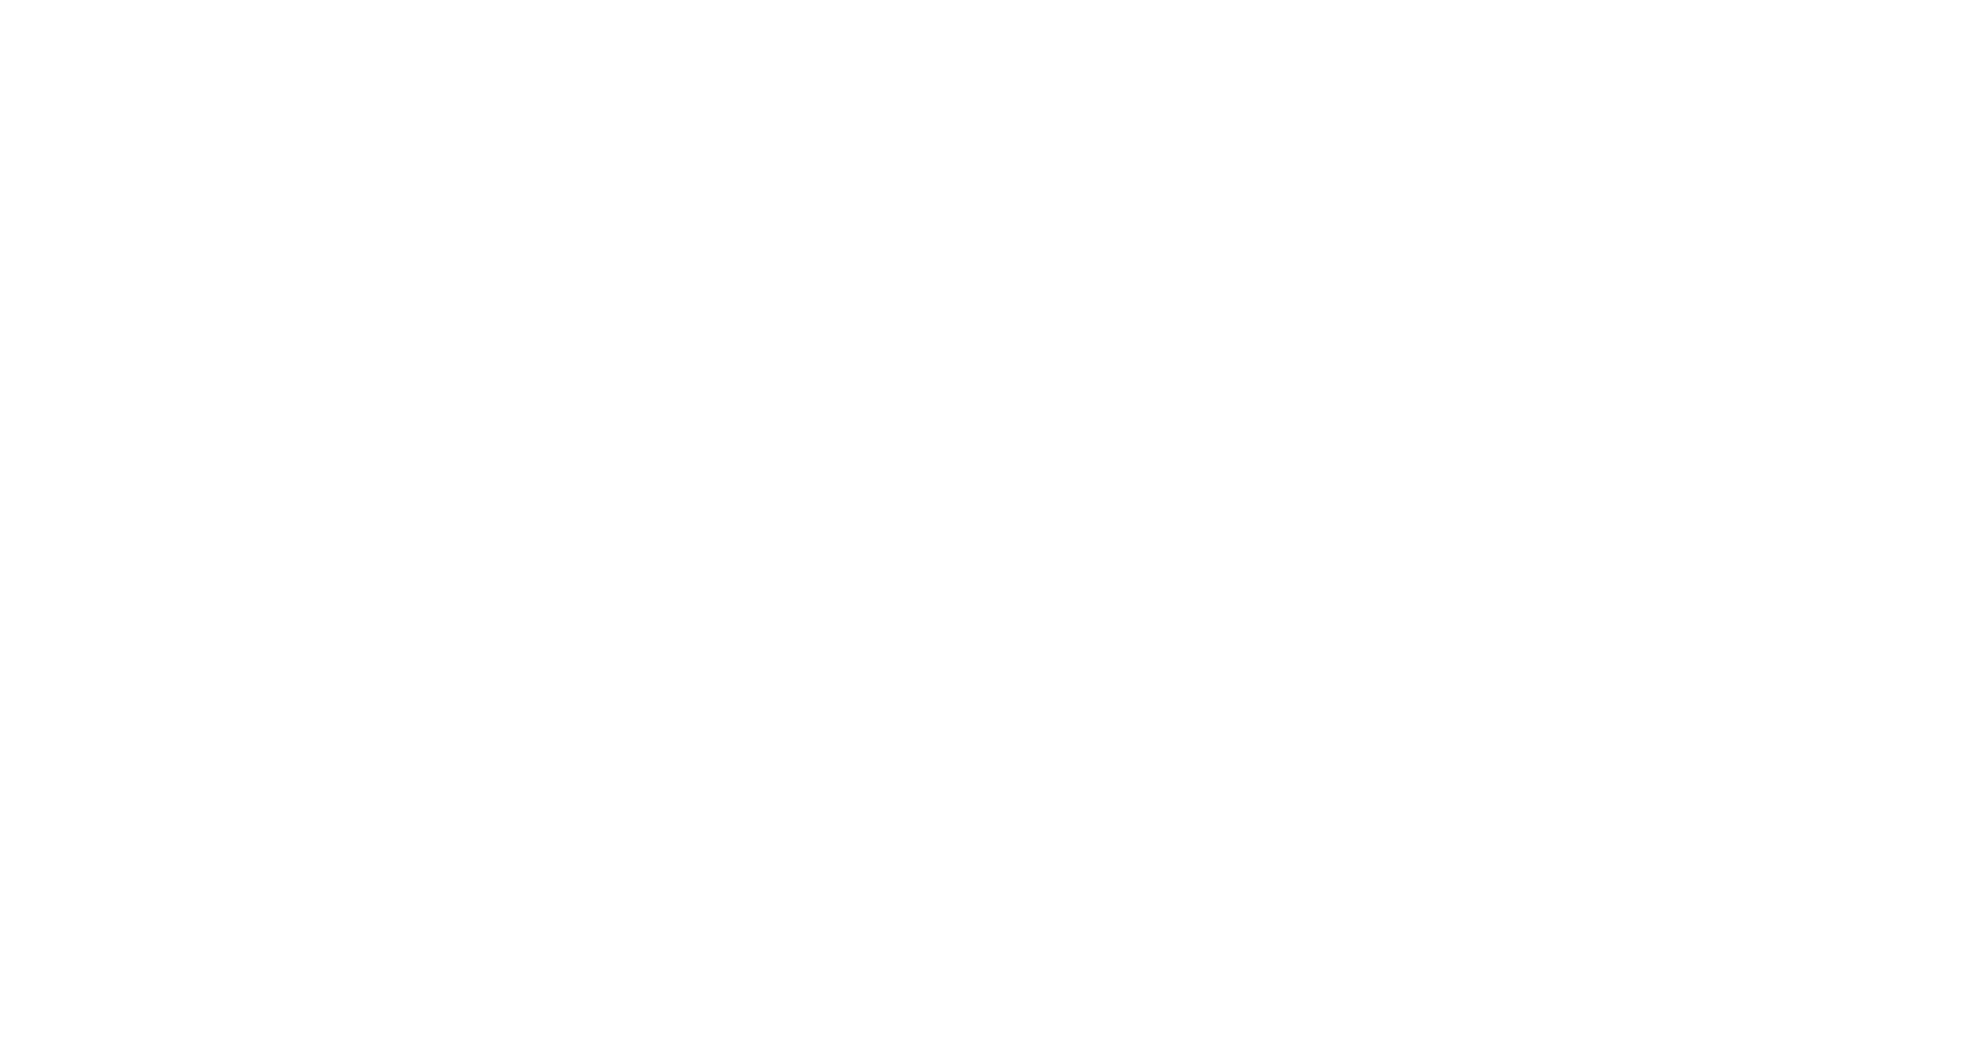 Young Virtuosi Festival 2017